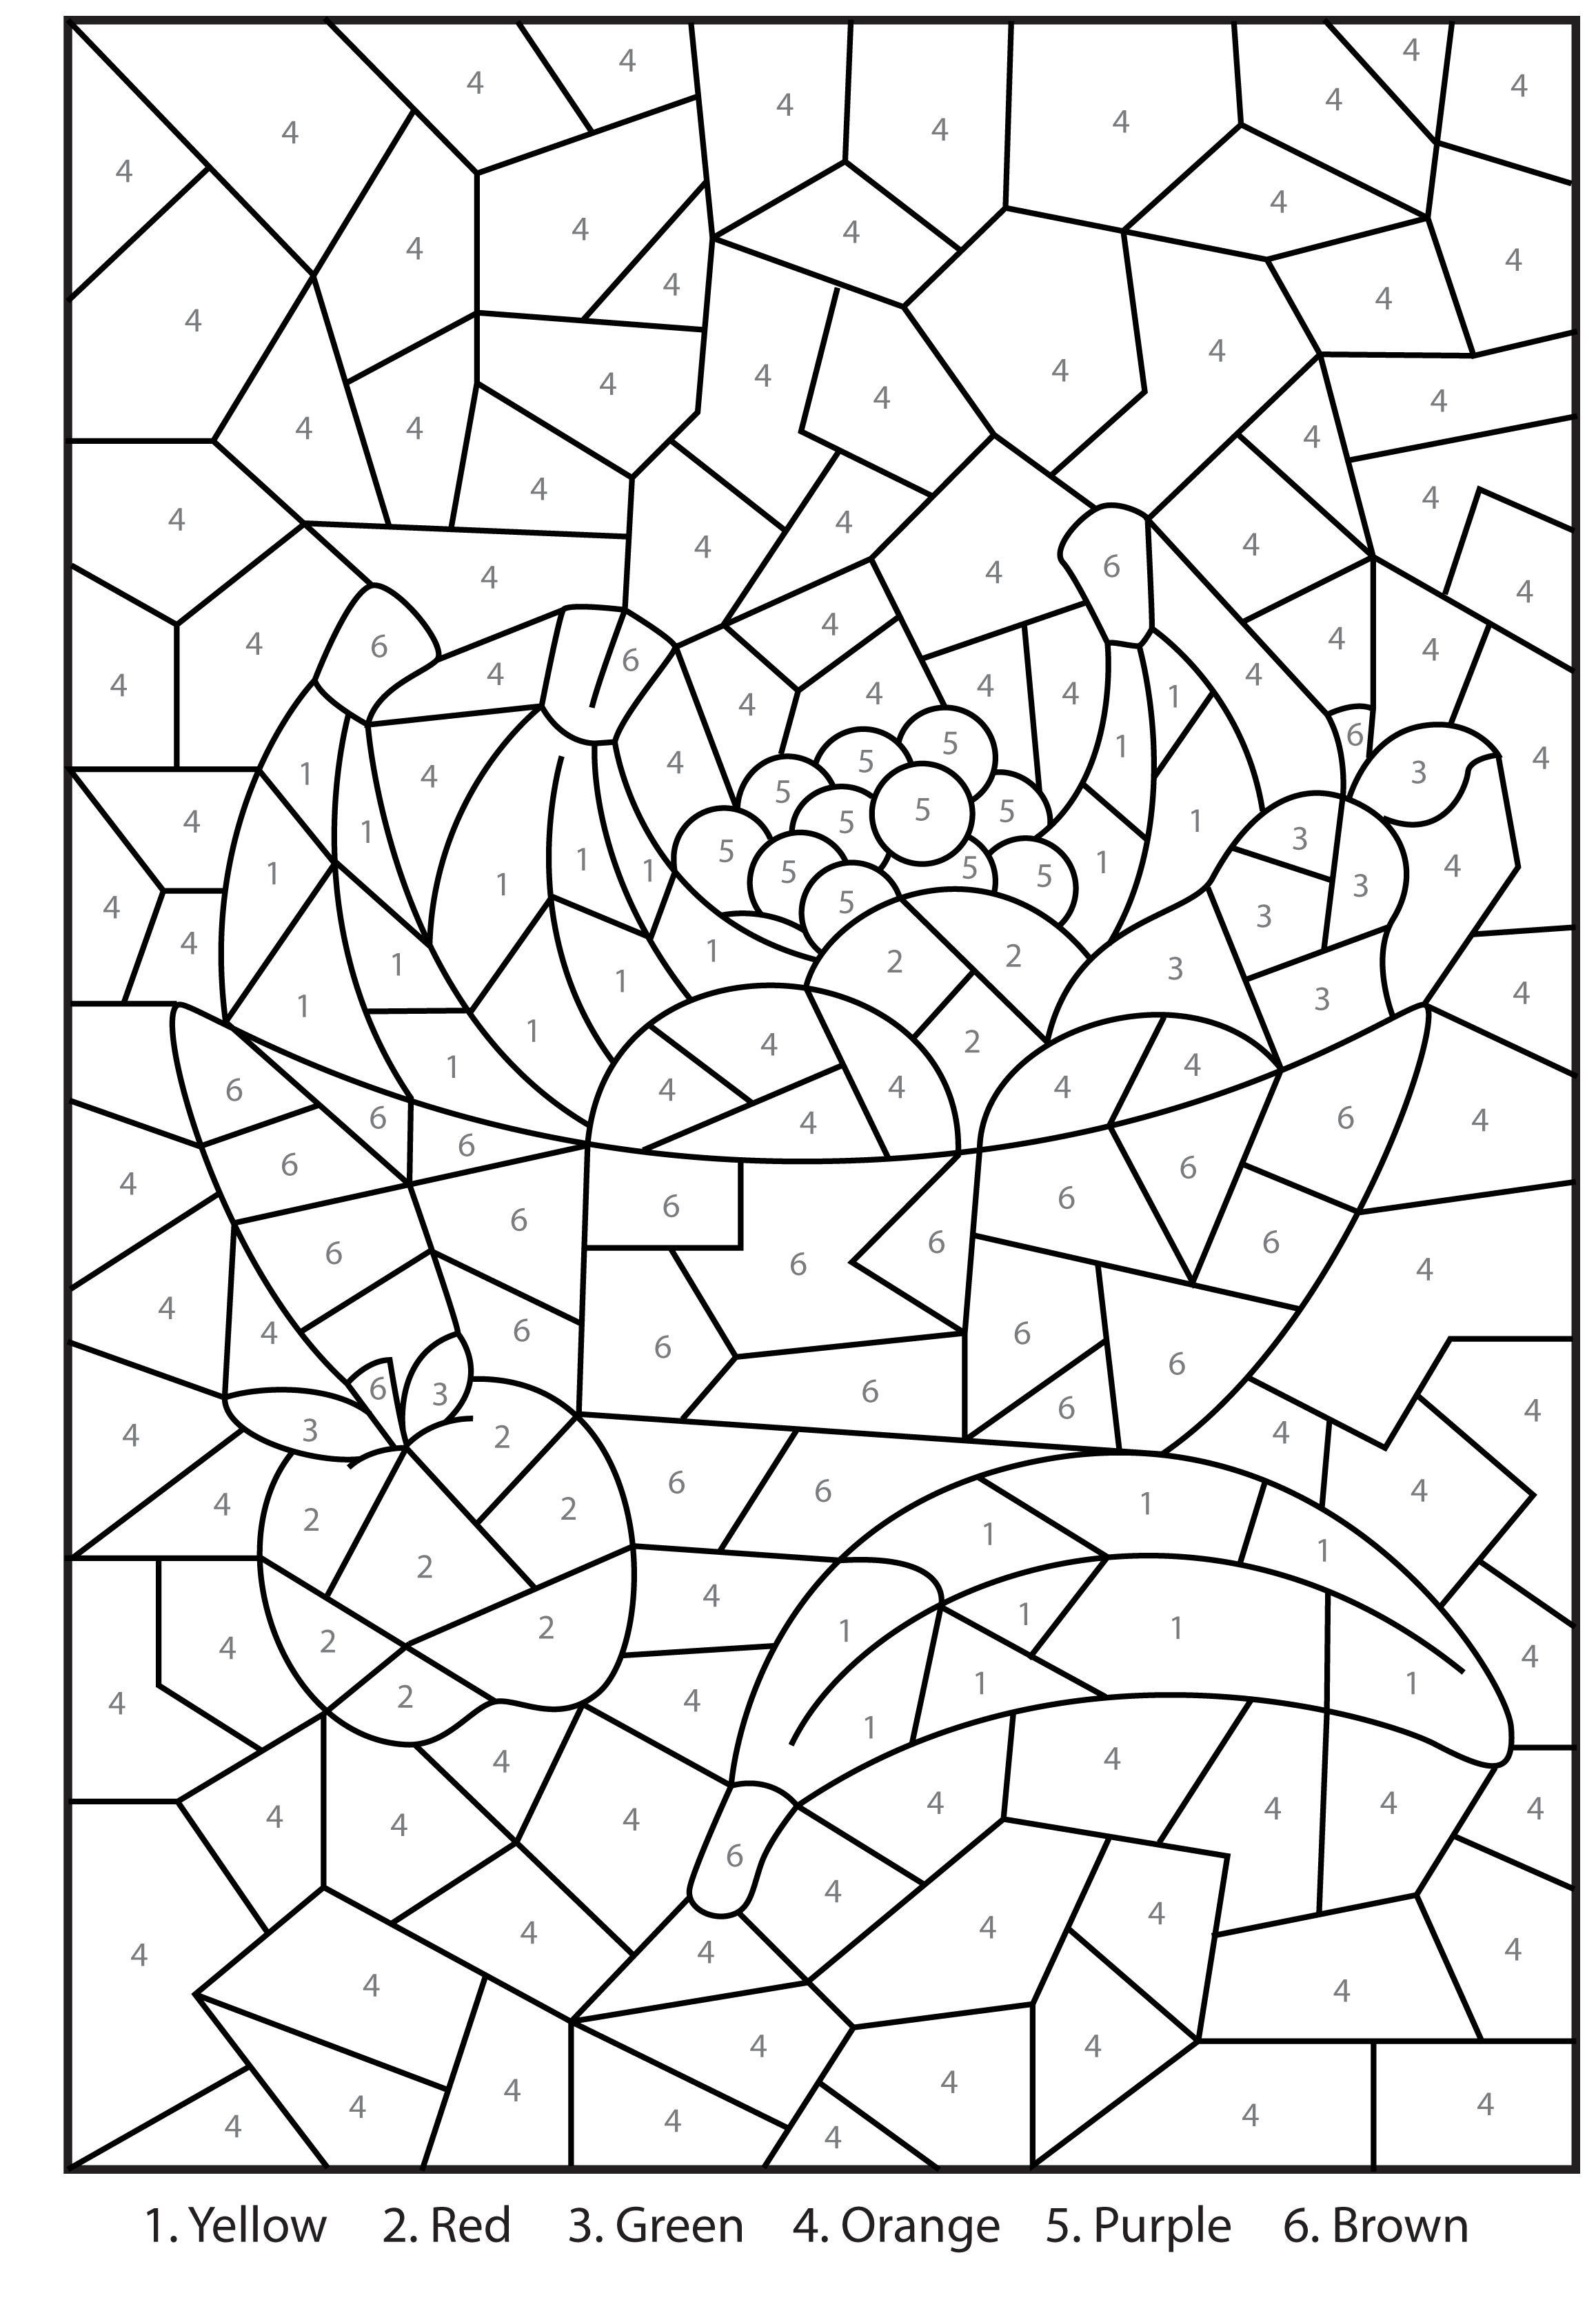 Unique Colour By Numbers Printable Coloring Coloringpages Coloringpagesforkids Coloringpagesforadul Coloring Books Coloring Pages Color By Number Printable